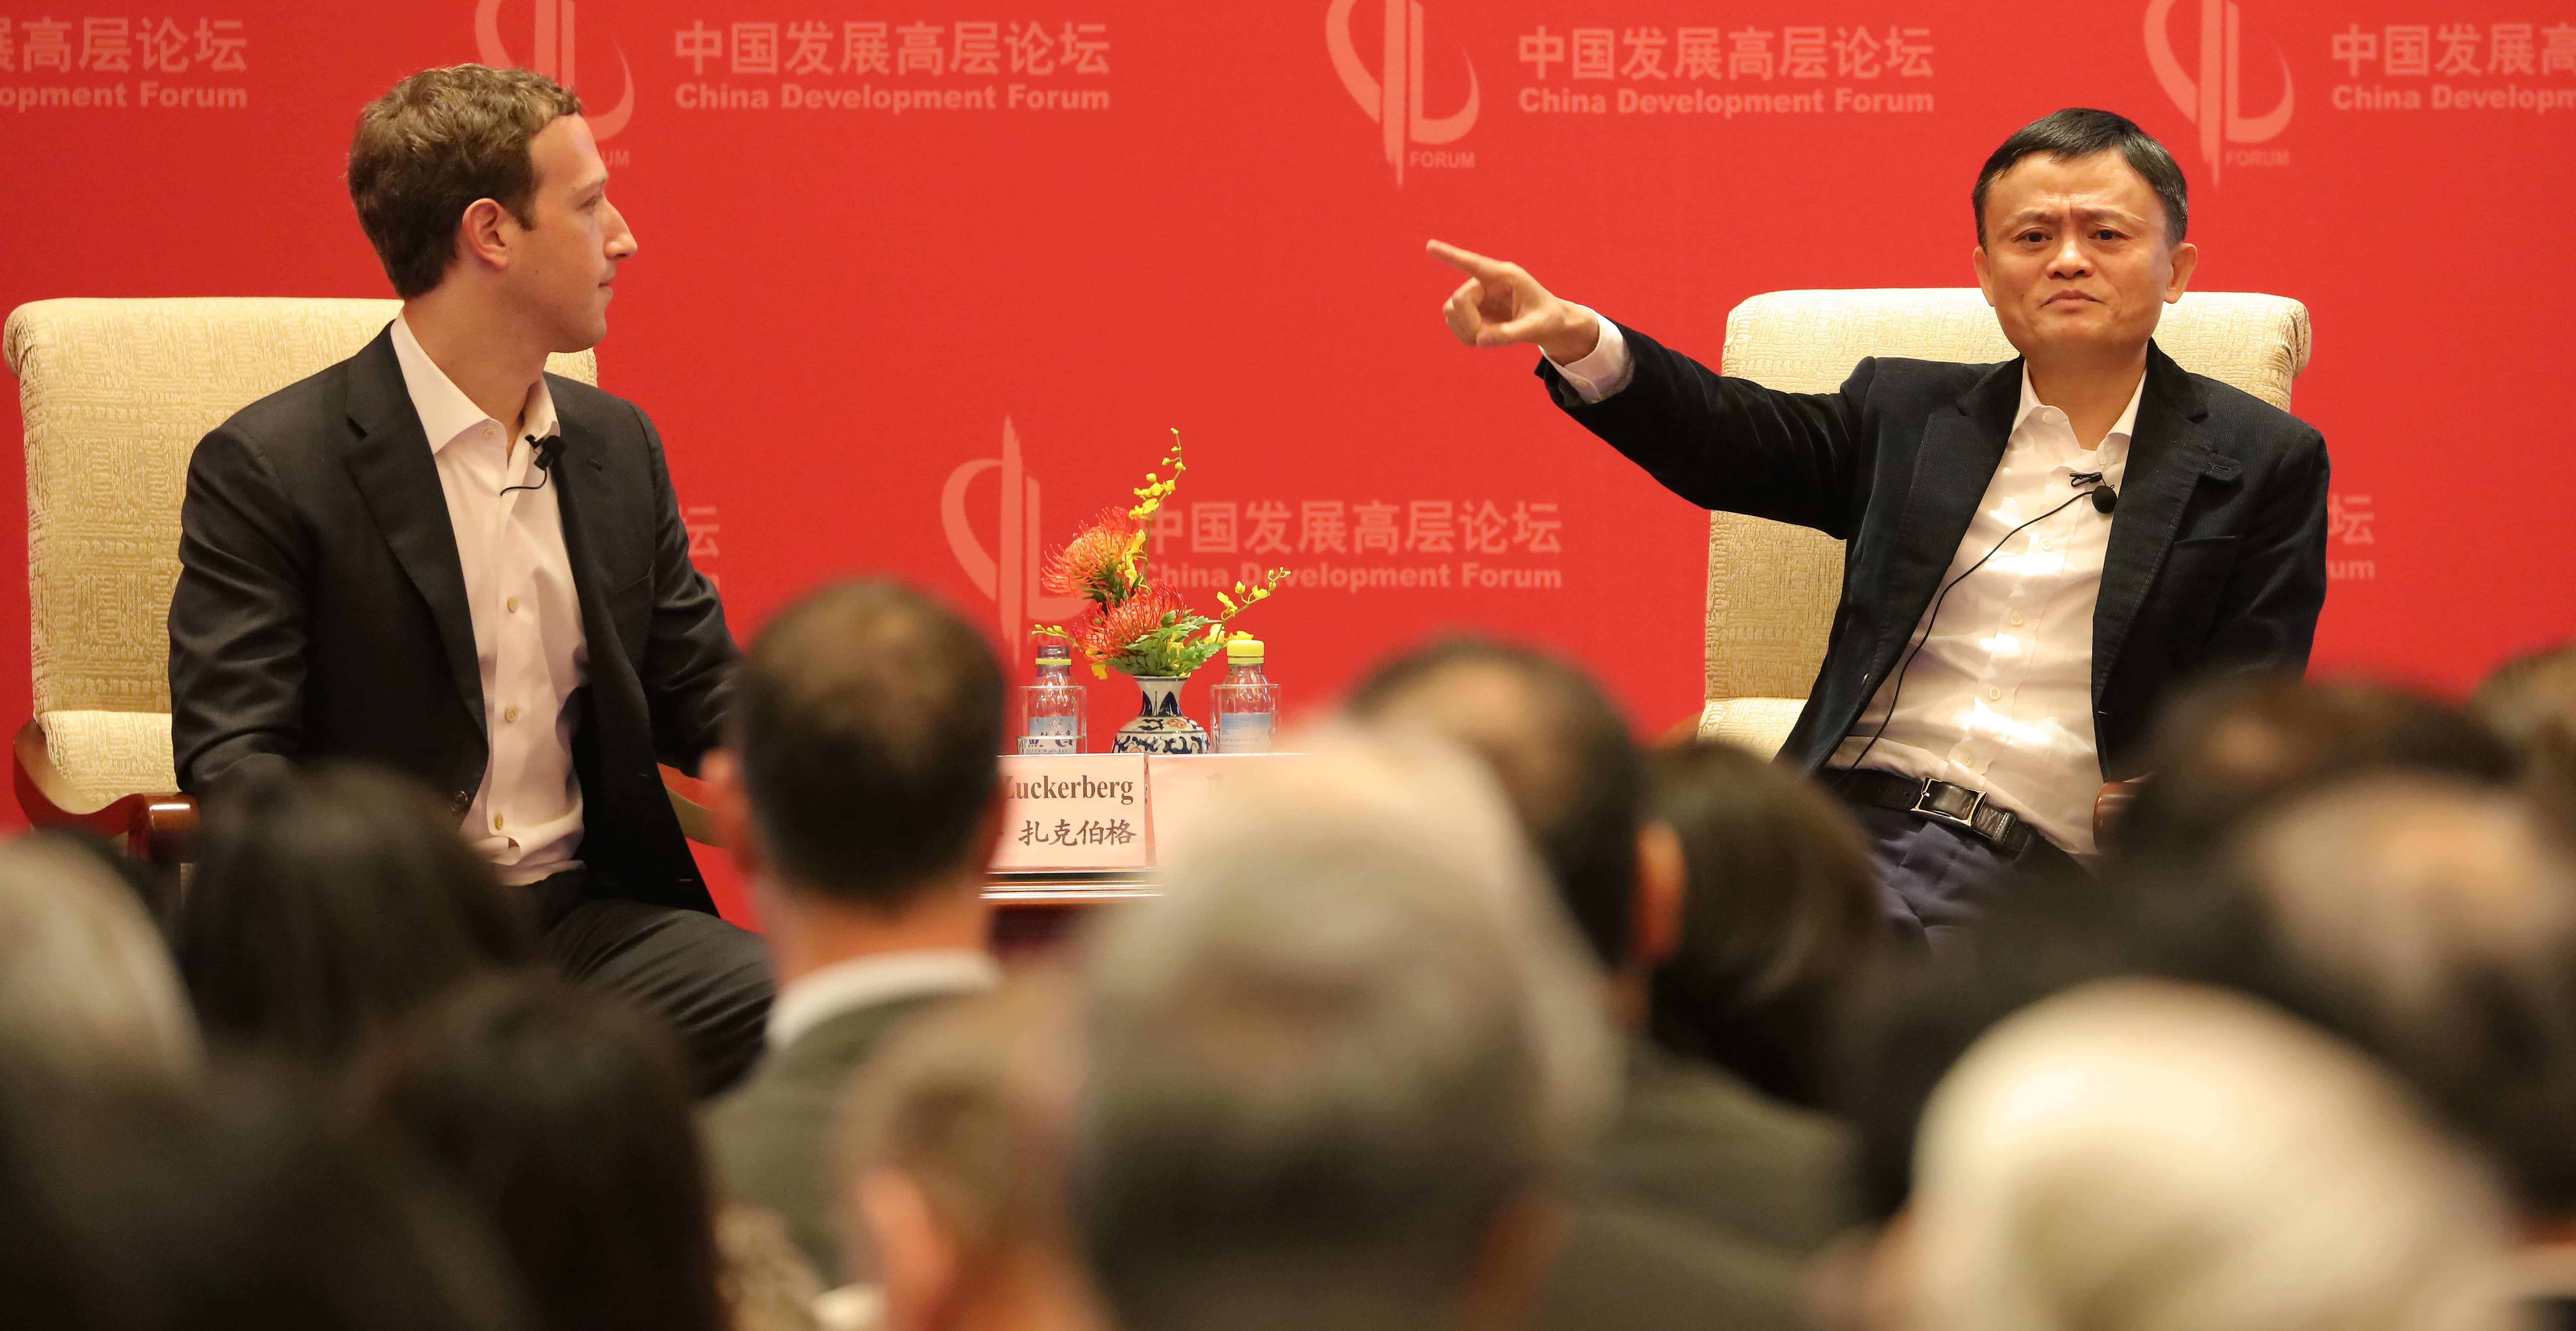 Facebook founder Mark Zuckerberg and Alibaba Group founder Jack Ma, 2016 (Photo: Getty Images/VCG)